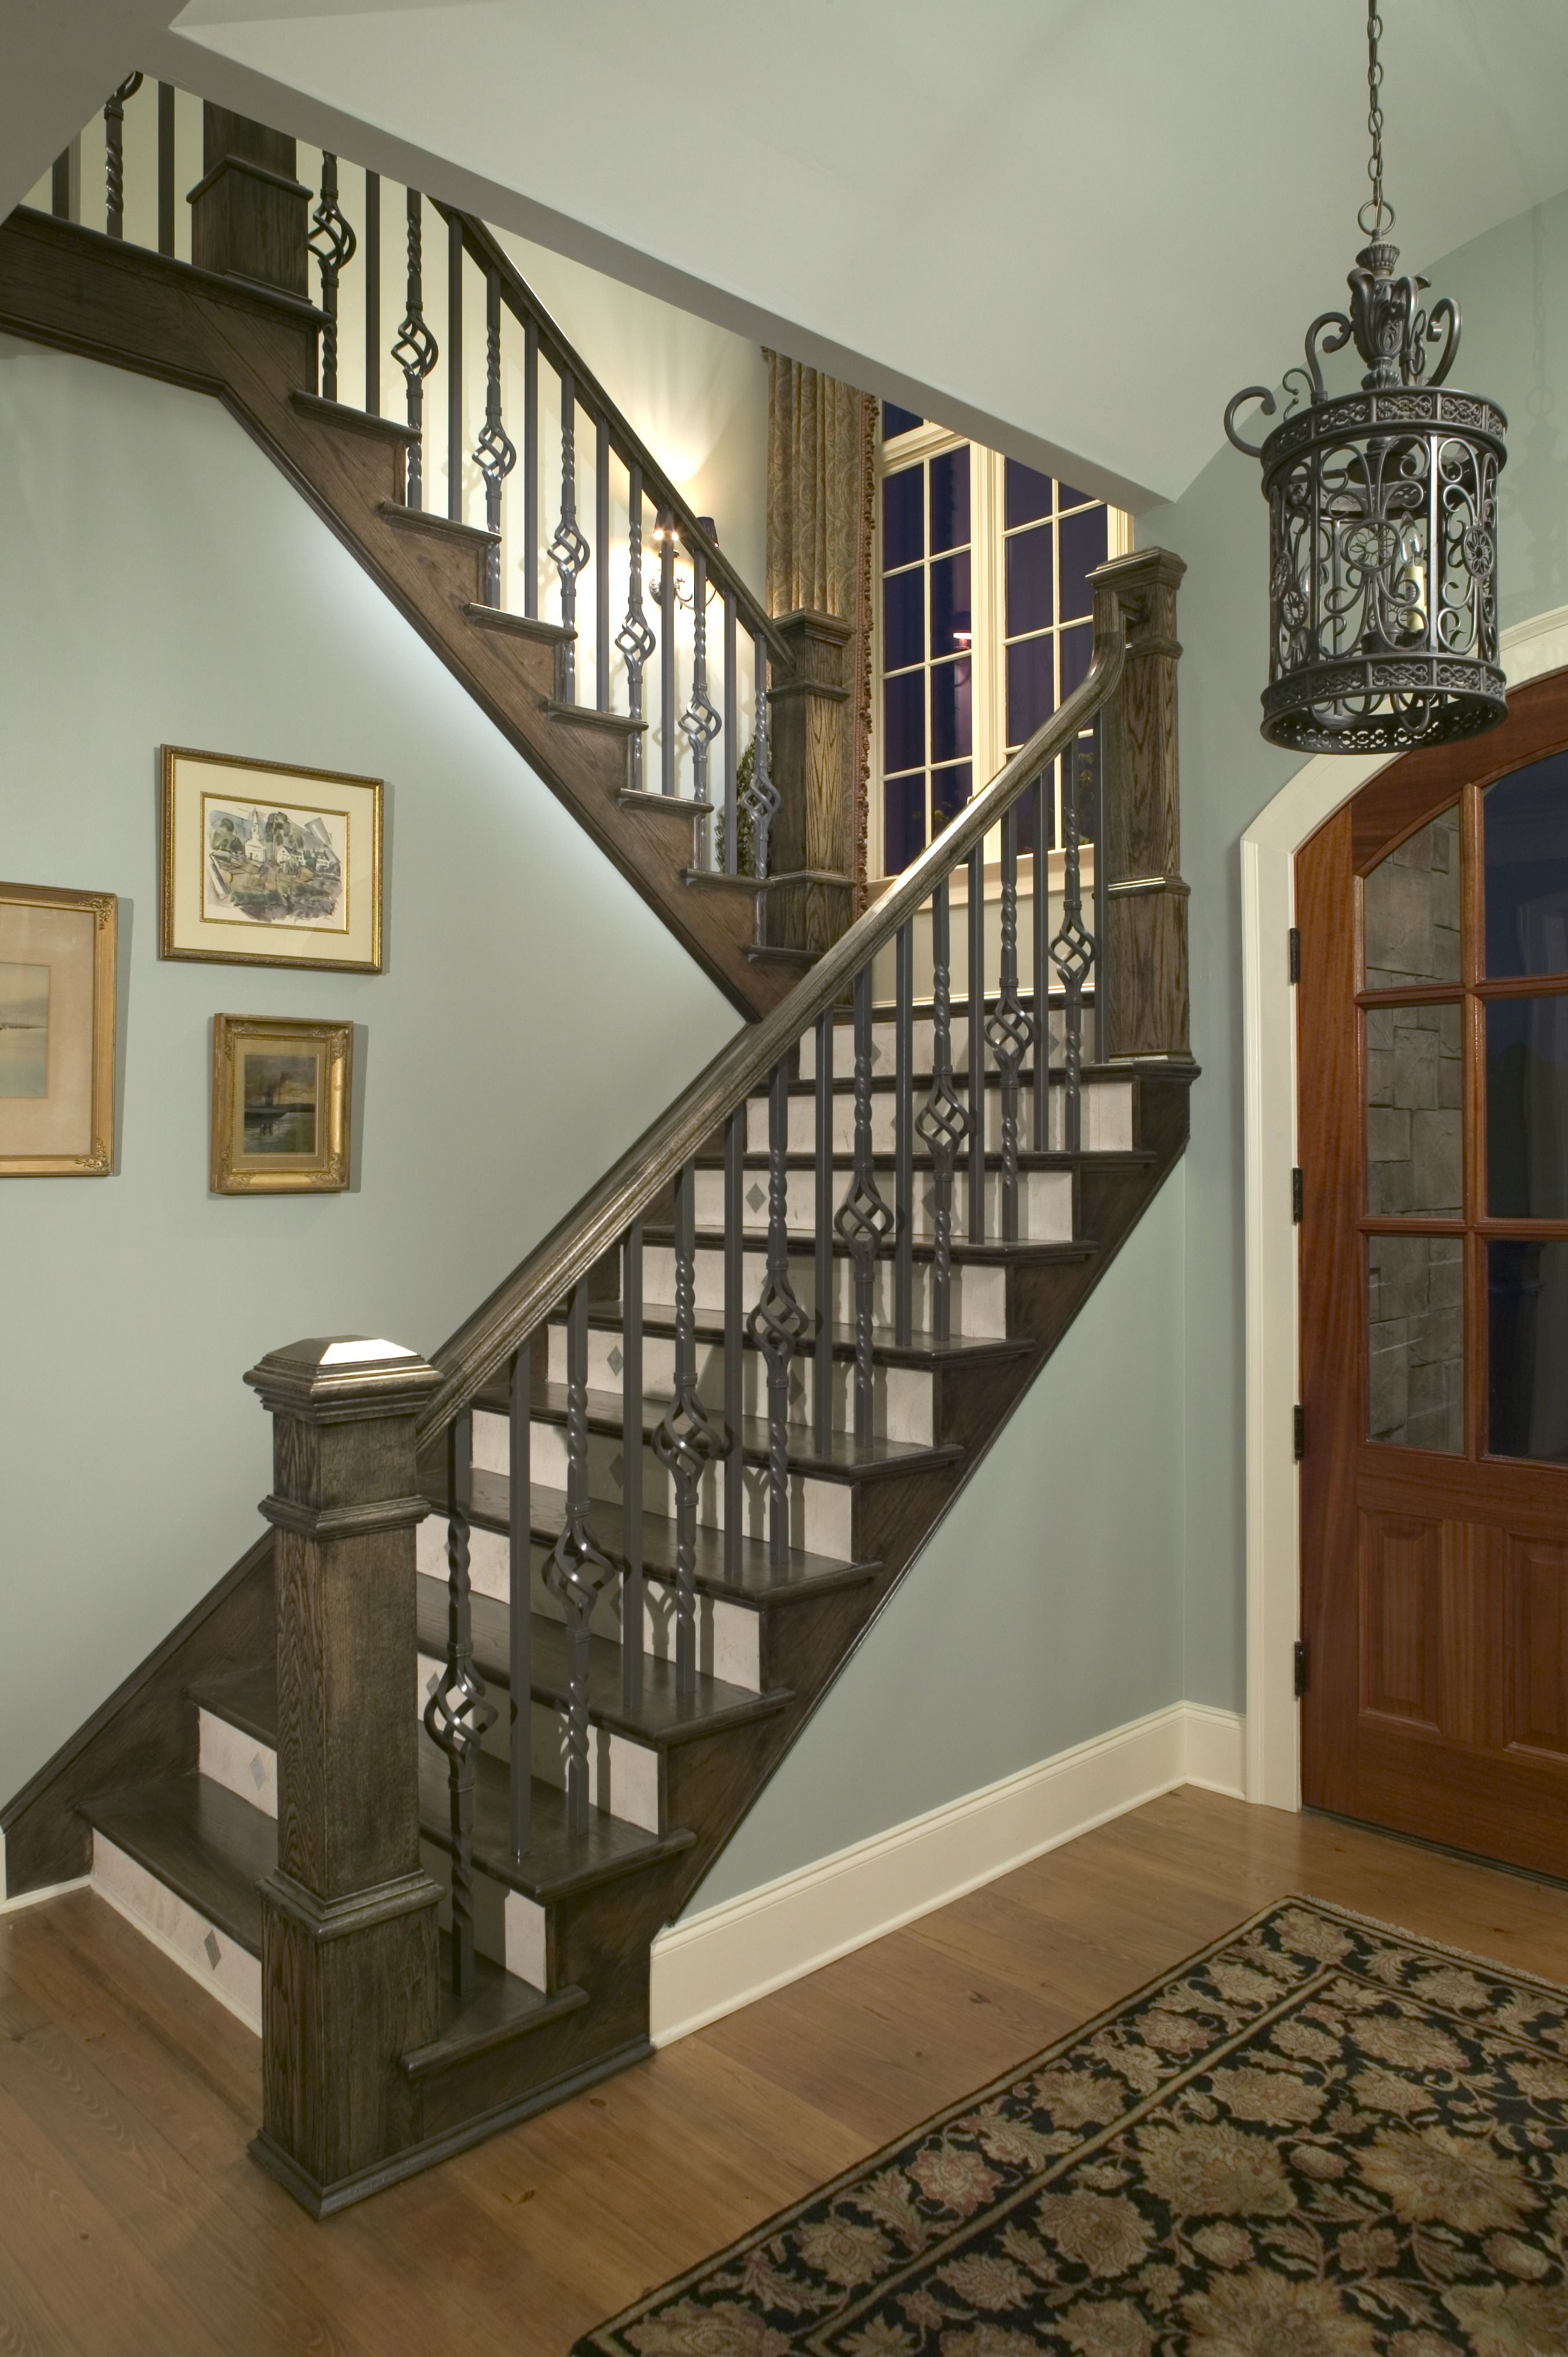 2020 Home Remodeling Costs Average Price To Remodel A House   Cost Of New Banister And Spindles   Chris Loves Julia   Stair Parts   Stair Treads   Paint   Iron Stair